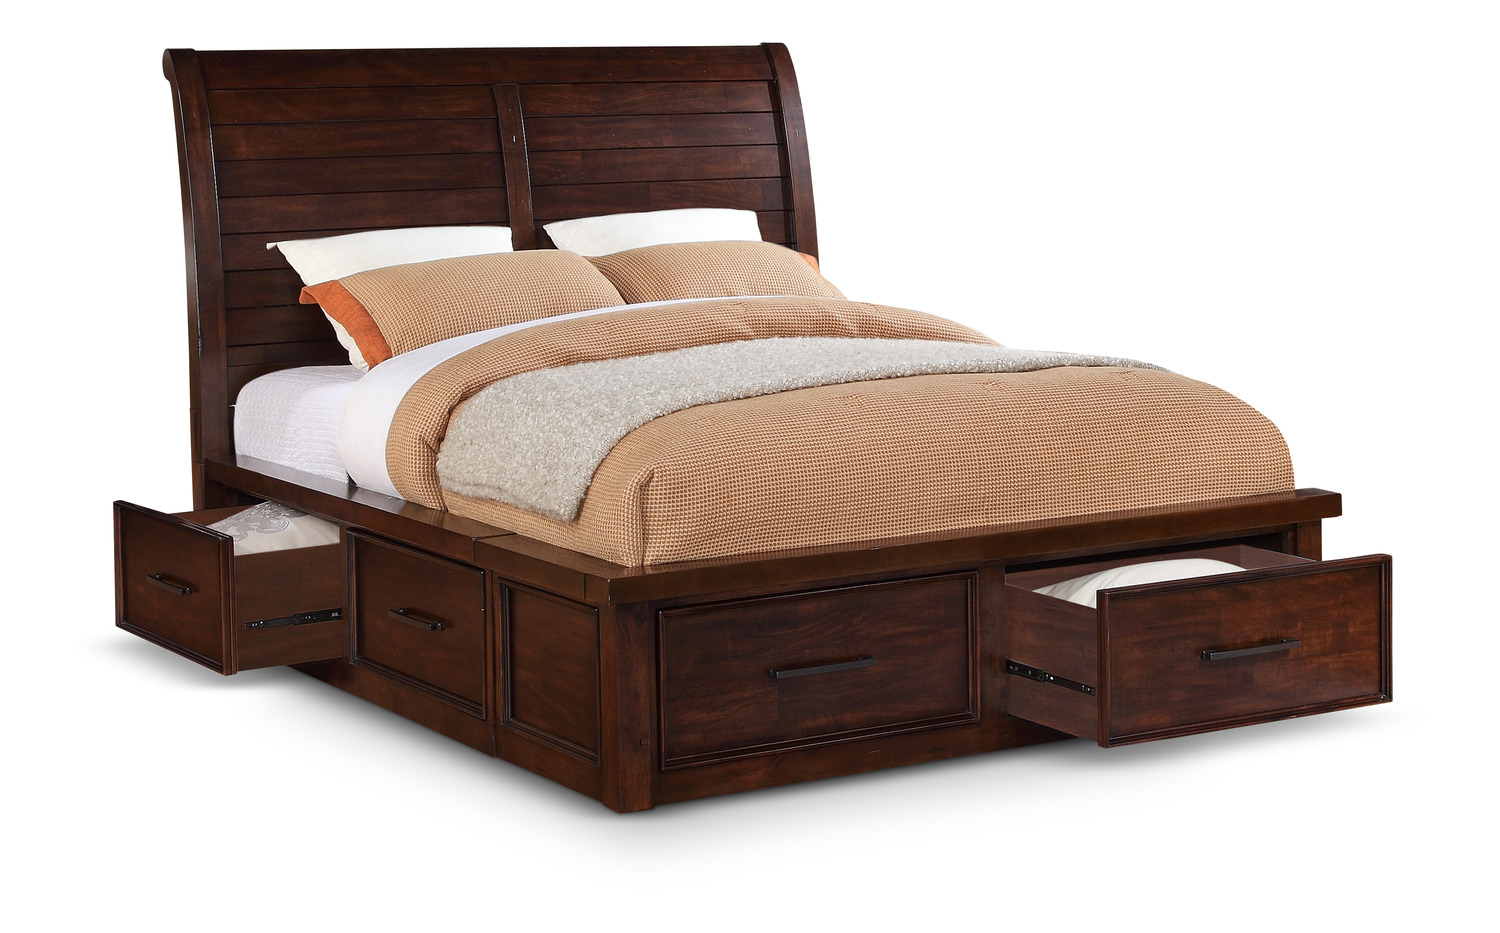 Delray sleigh bed with underbed storage by thomas cole designs hom furniture Queen bedroom sets with underbed storage